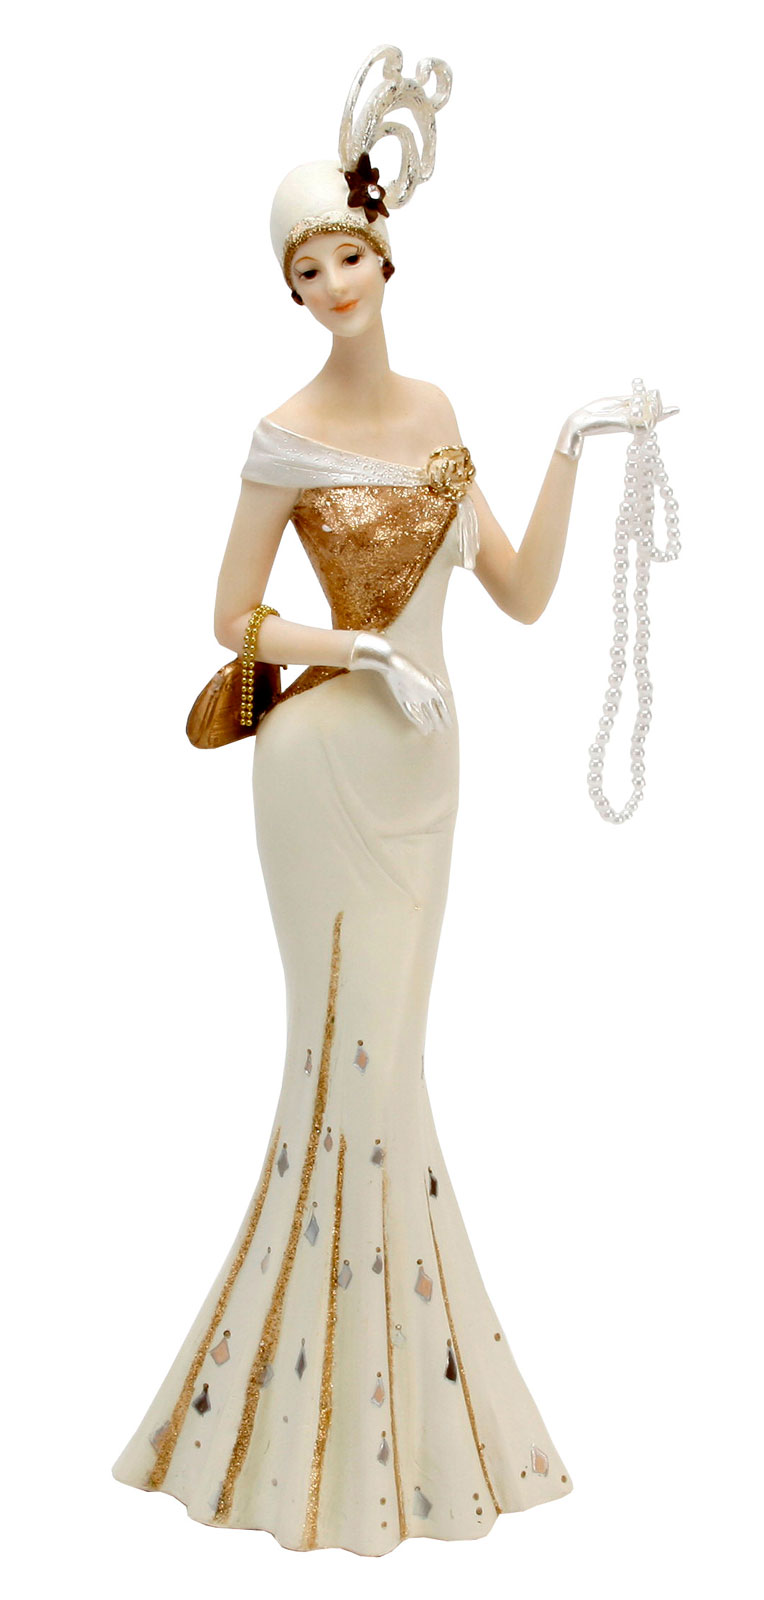 Juliana Art Deco Chicago Style Evening Model Lady Figurine